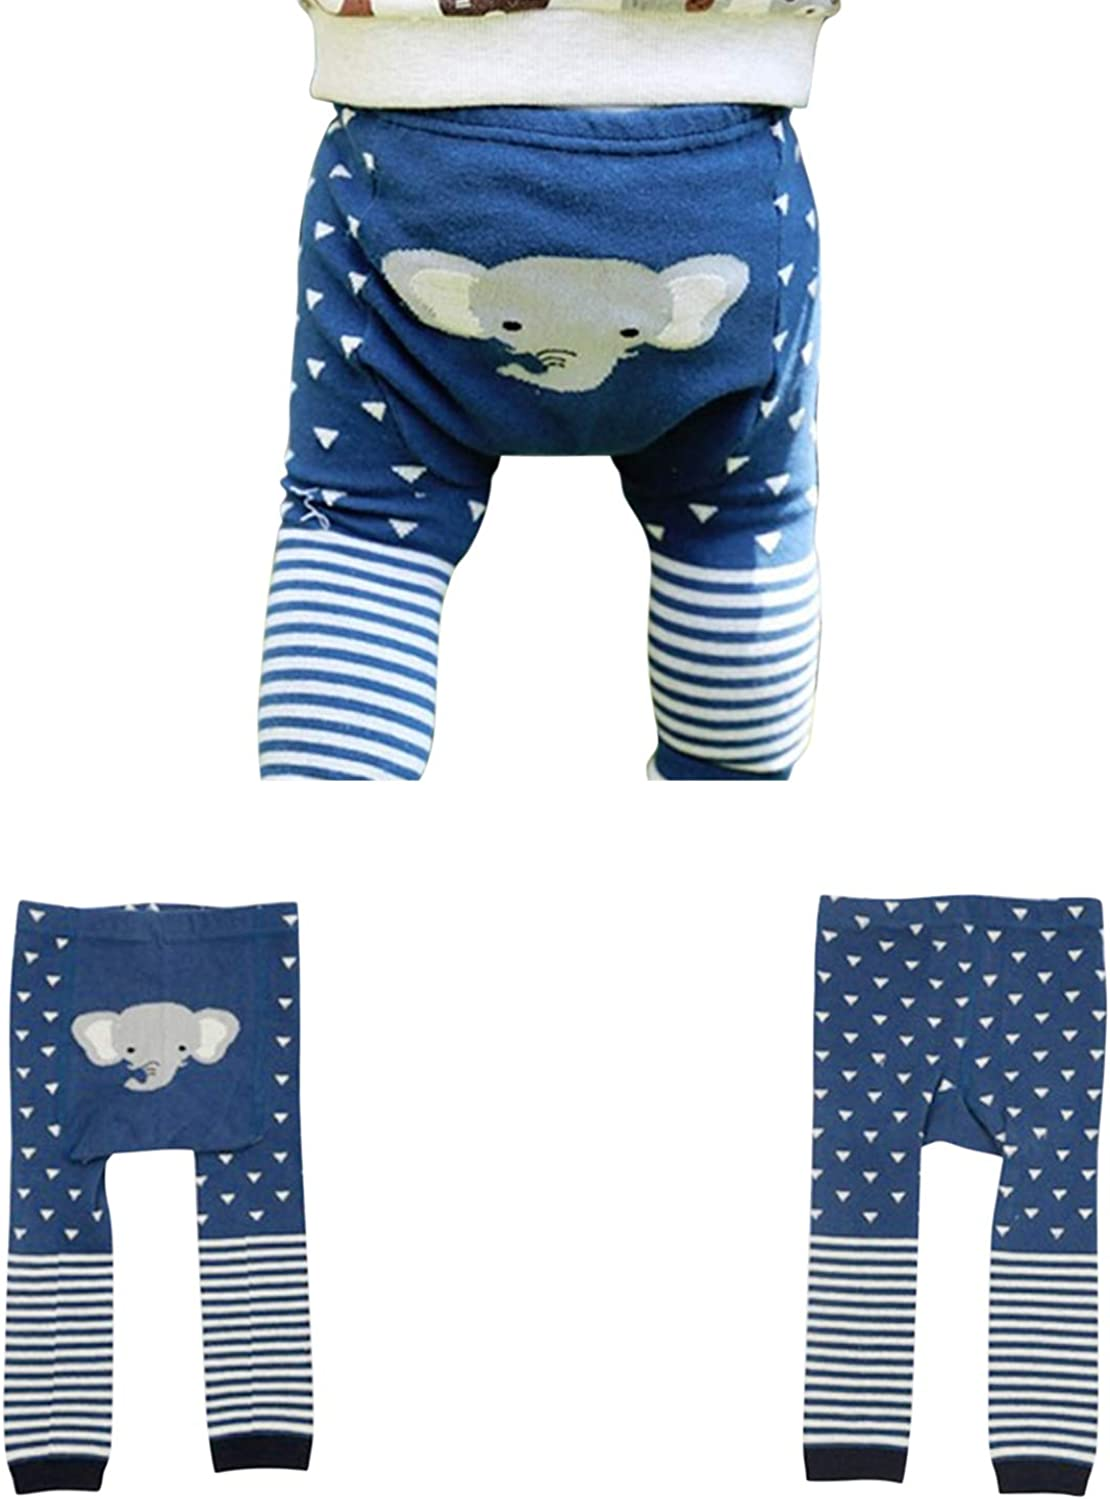 Evelin LEE Baby Unisex Cute Leggings Spring Fall Cartoon Seamless Knitted Warm Tights